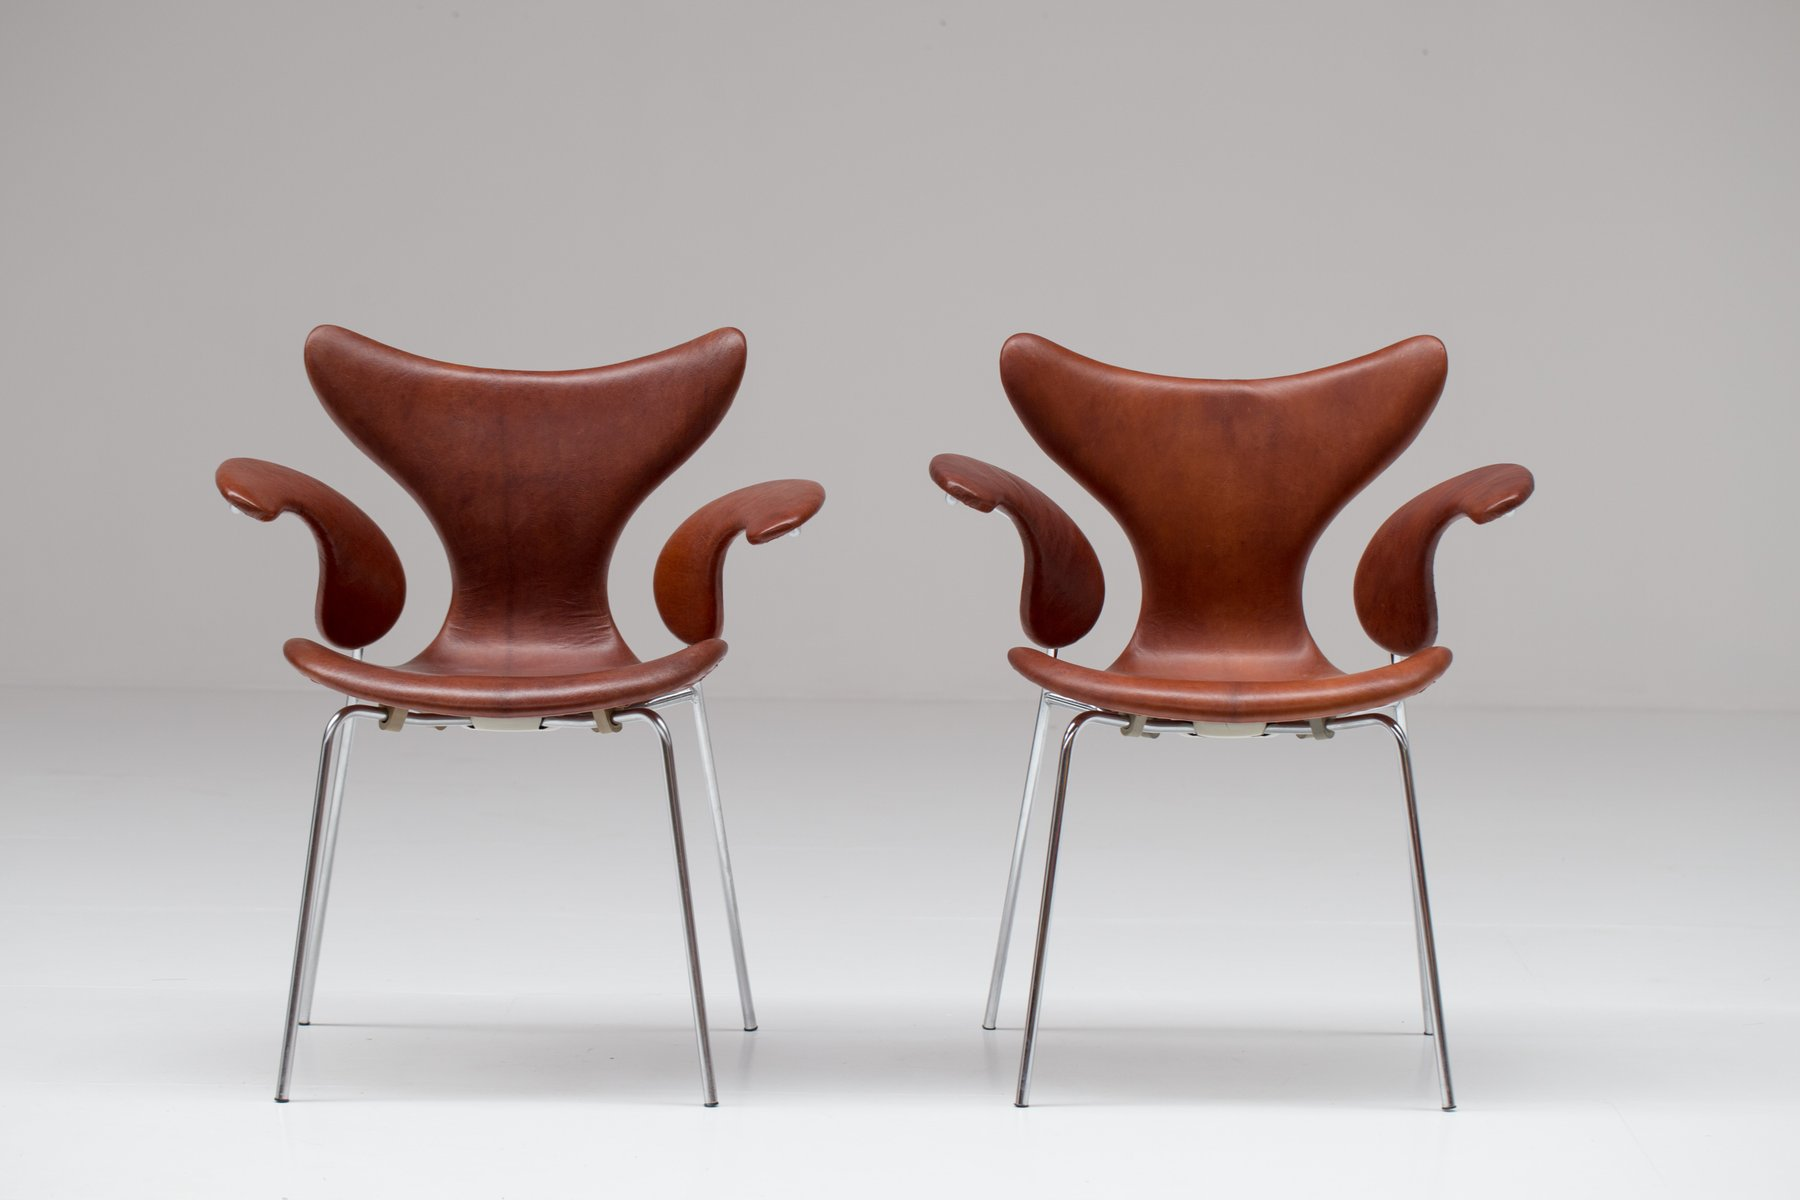 Seagull Chairs By Arne Jacobsen 1960s Set Of 2 For Sale At Pamono